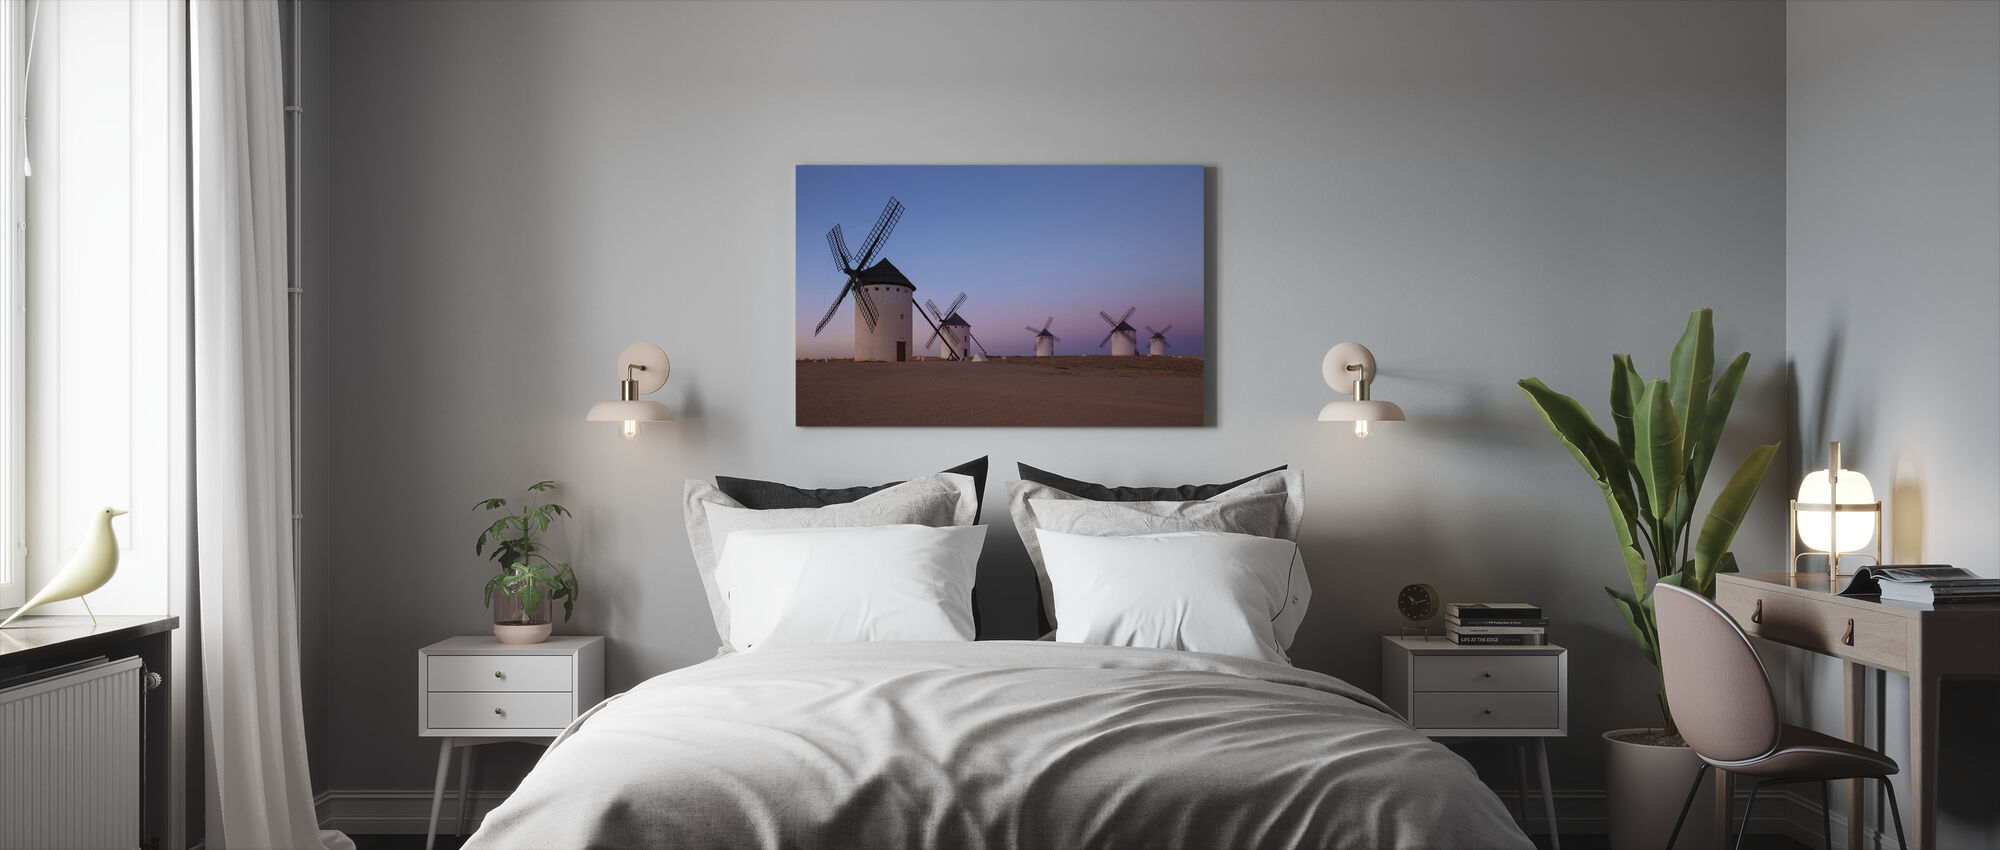 Windmills of La Mancha - Canvas print - Bedroom